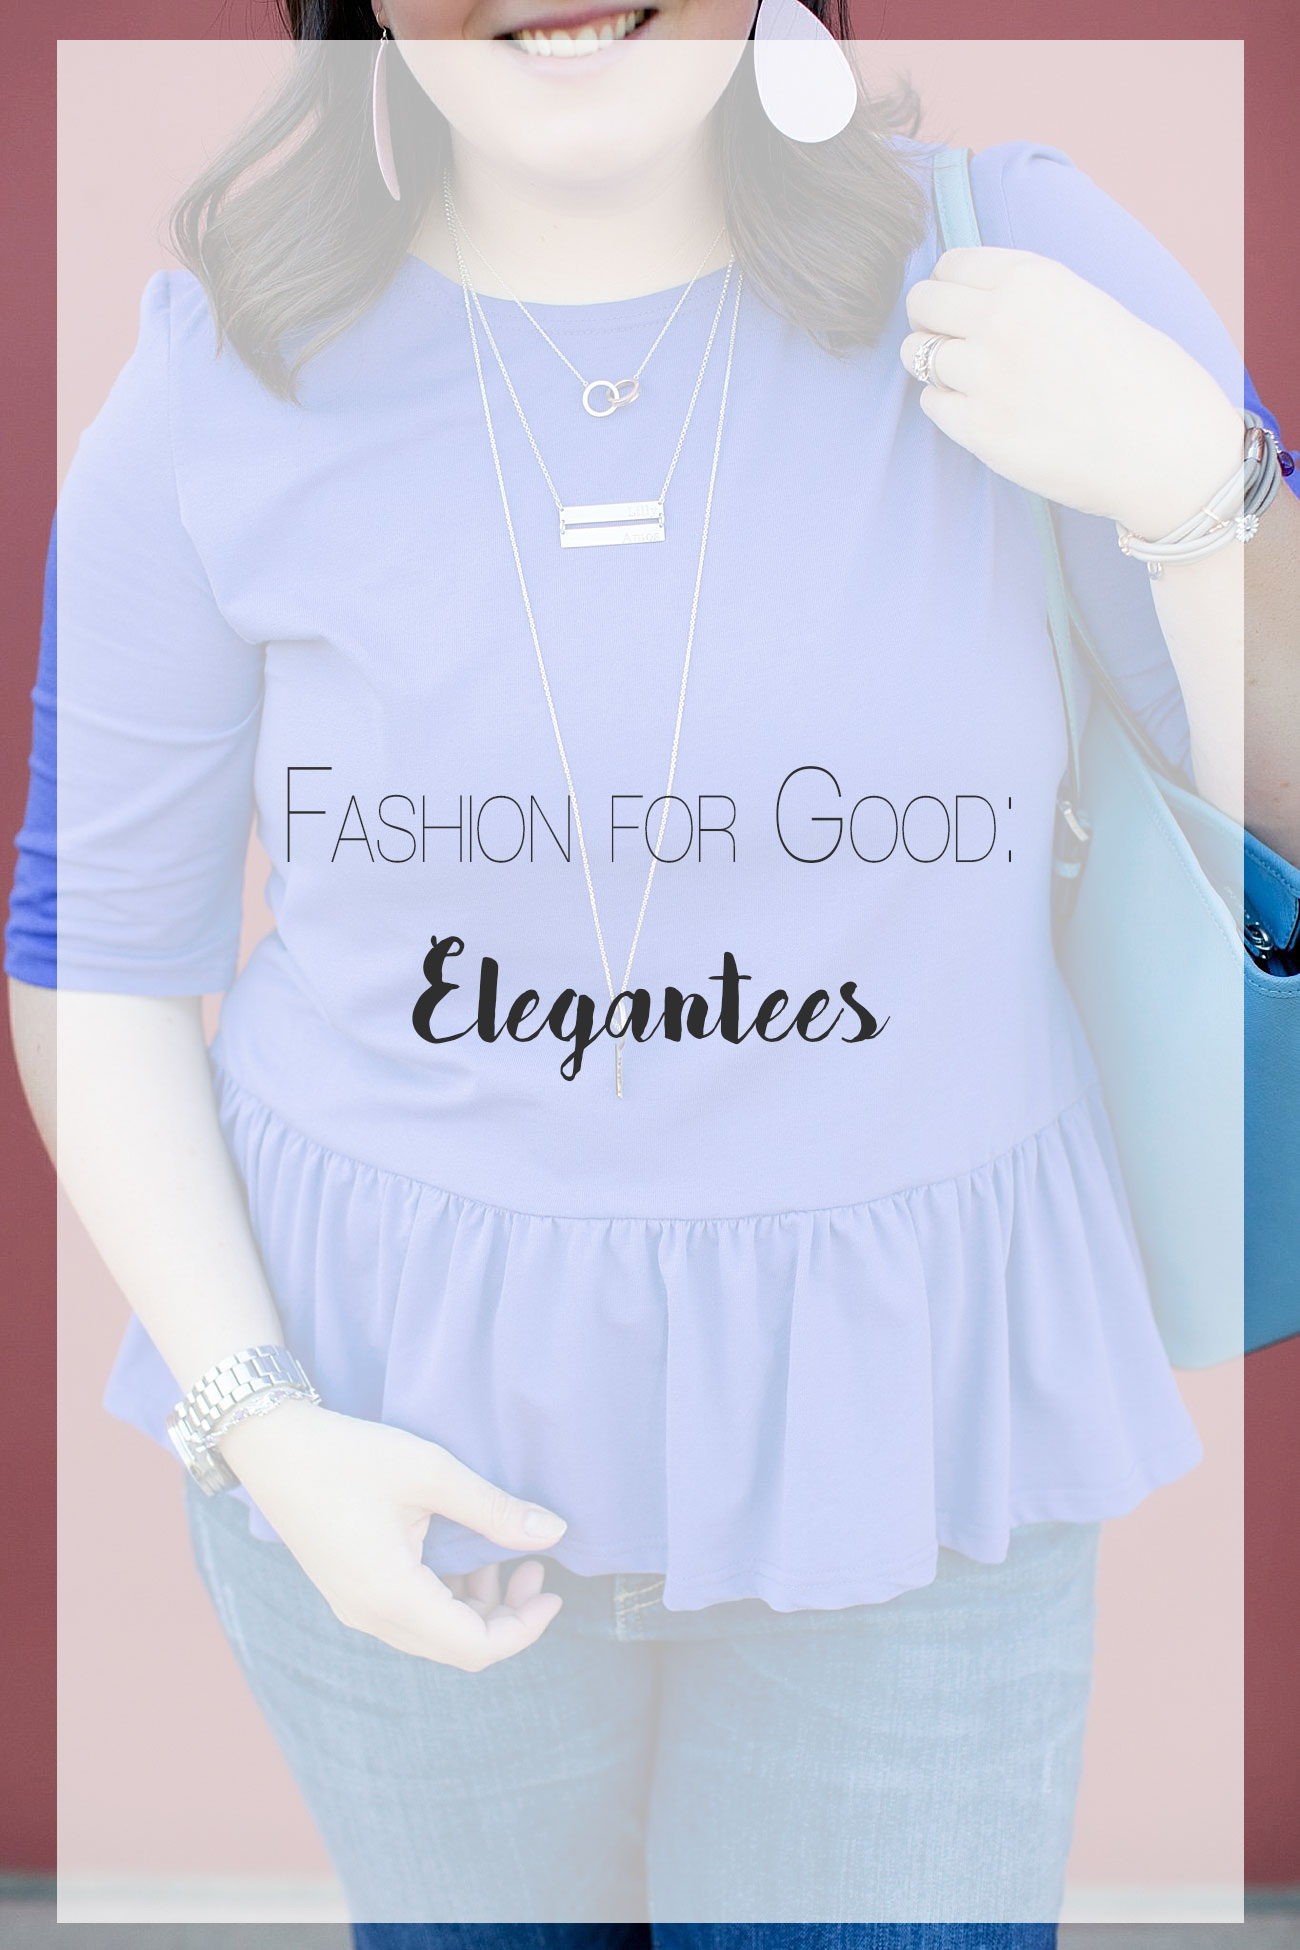 Fashion for Good Friday: Elegantees